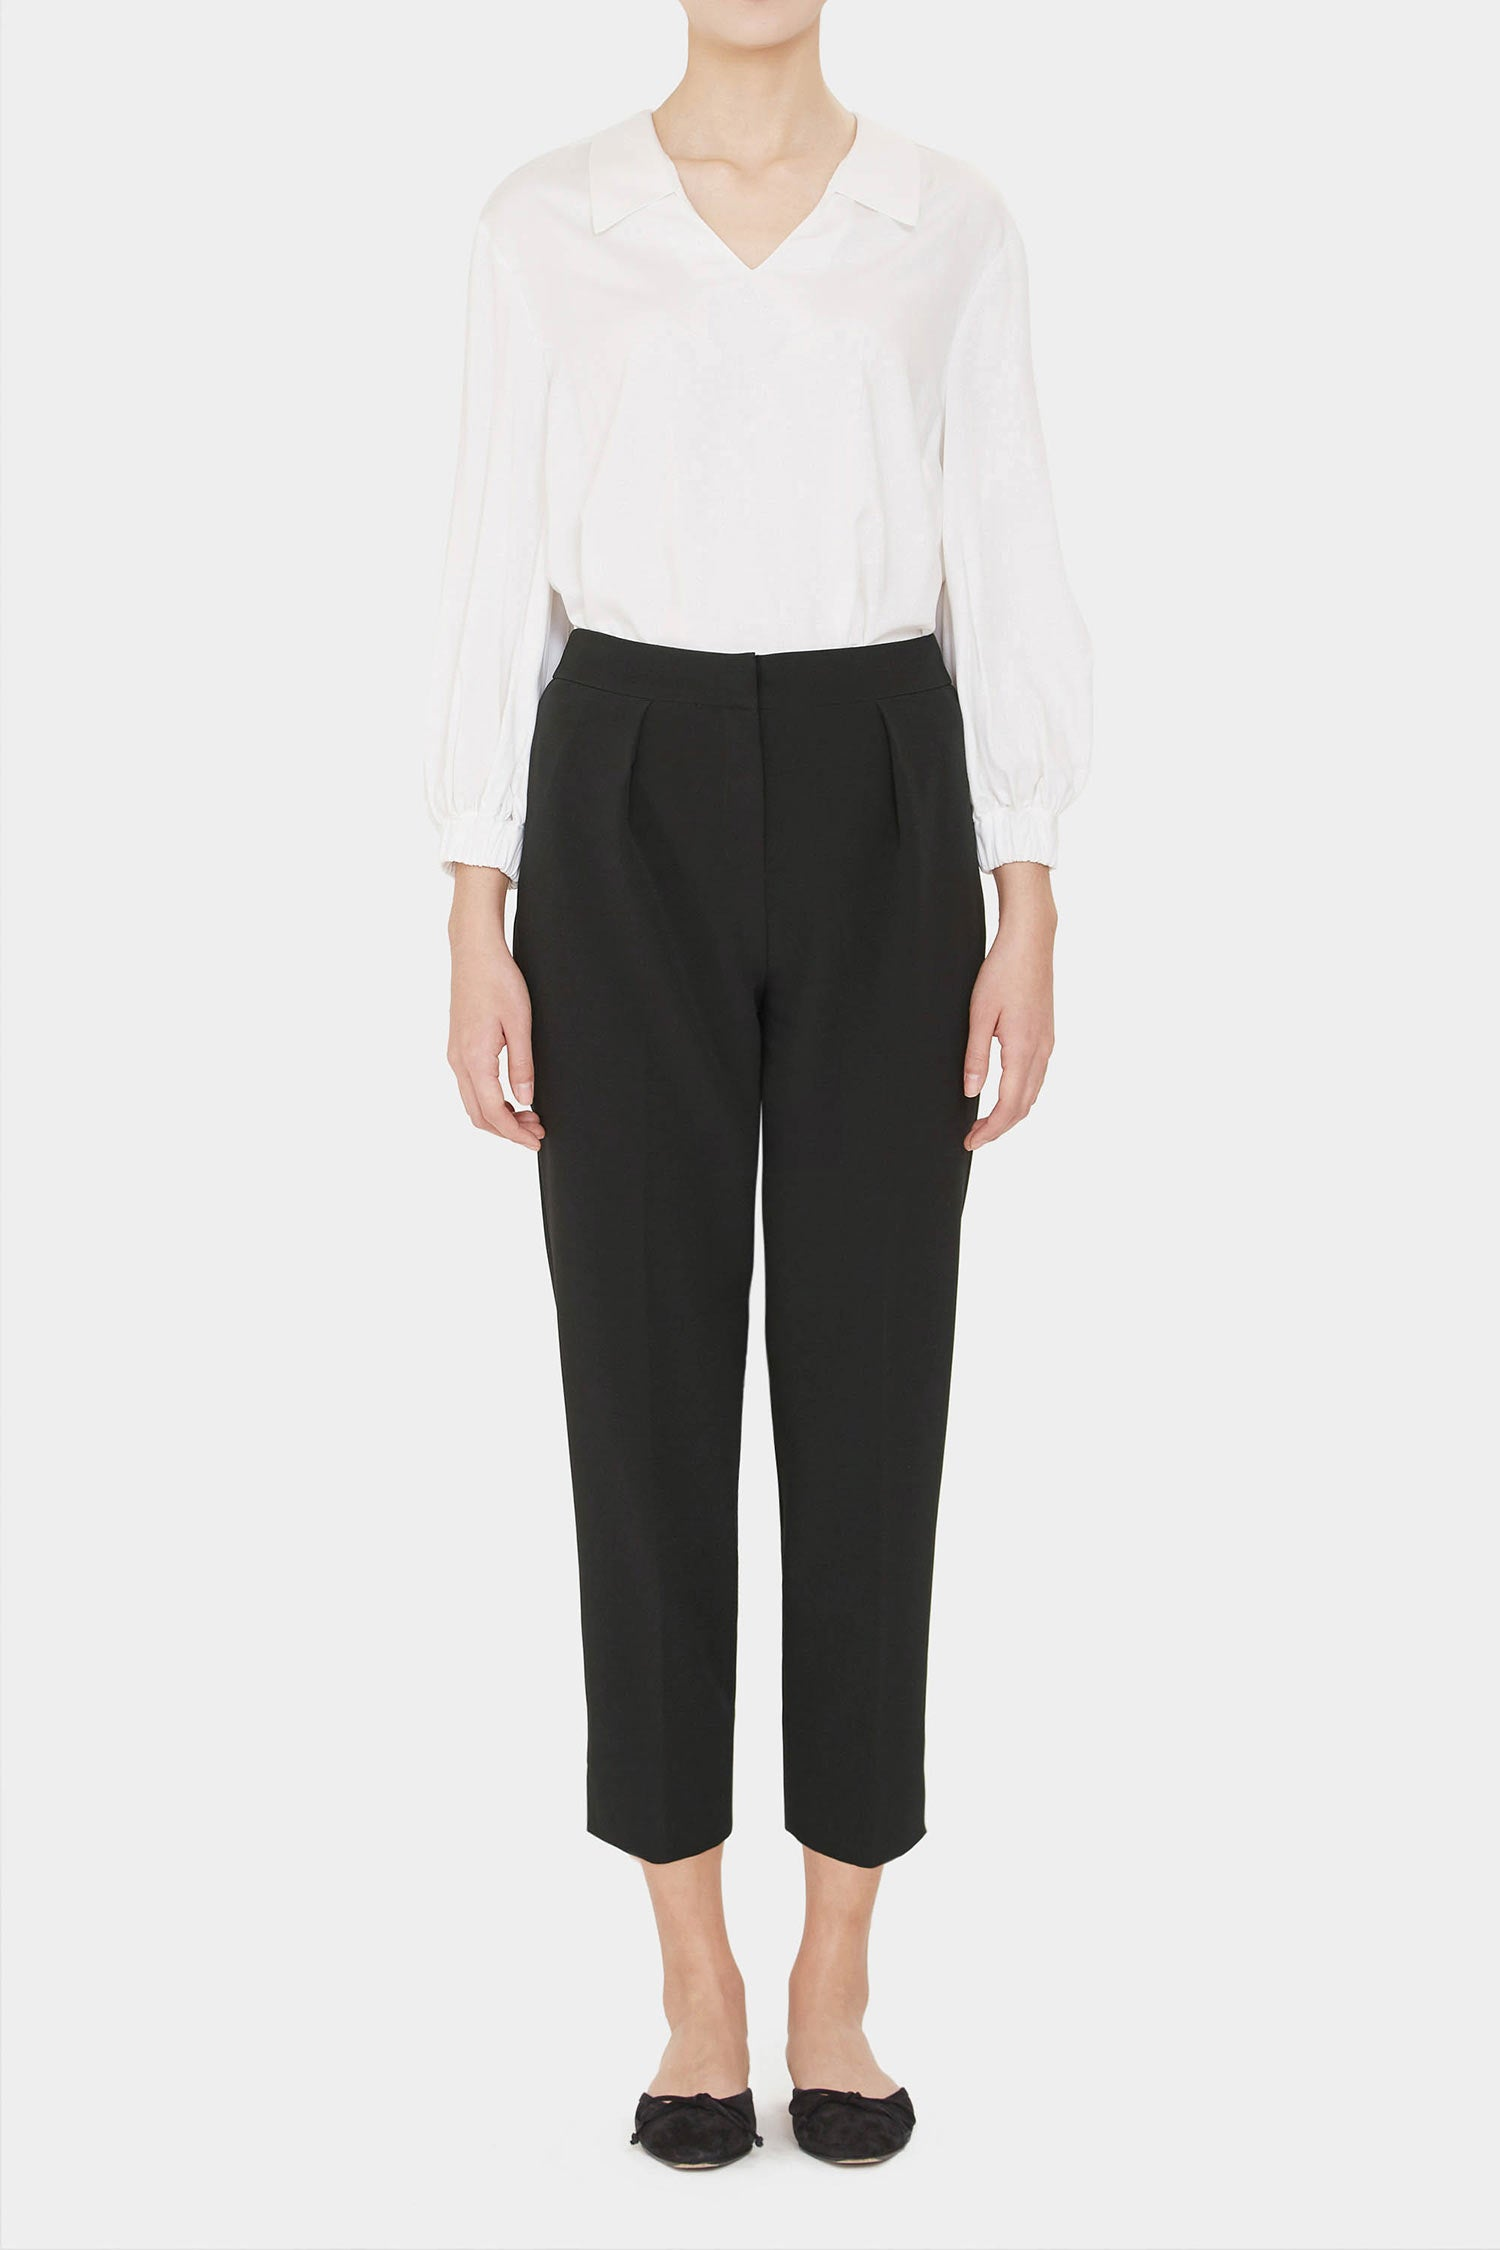 BLACK GABBY HIGH RISE PLEATED PANTS